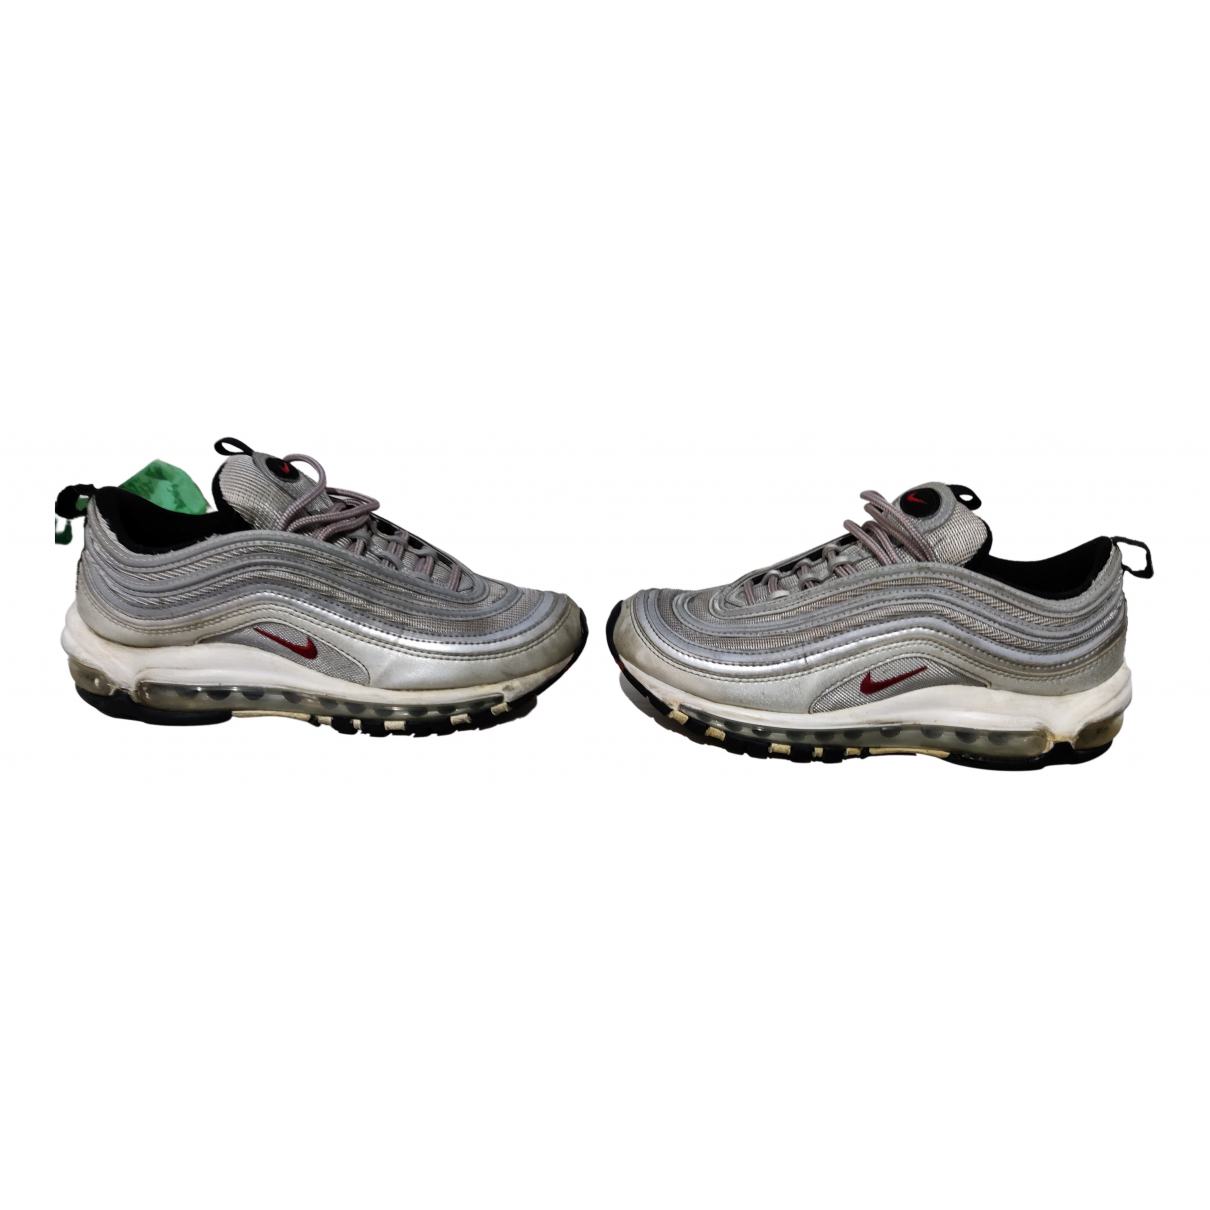 Nike Air Max 97 Silver Cloth Trainers for Women 38.5 EU